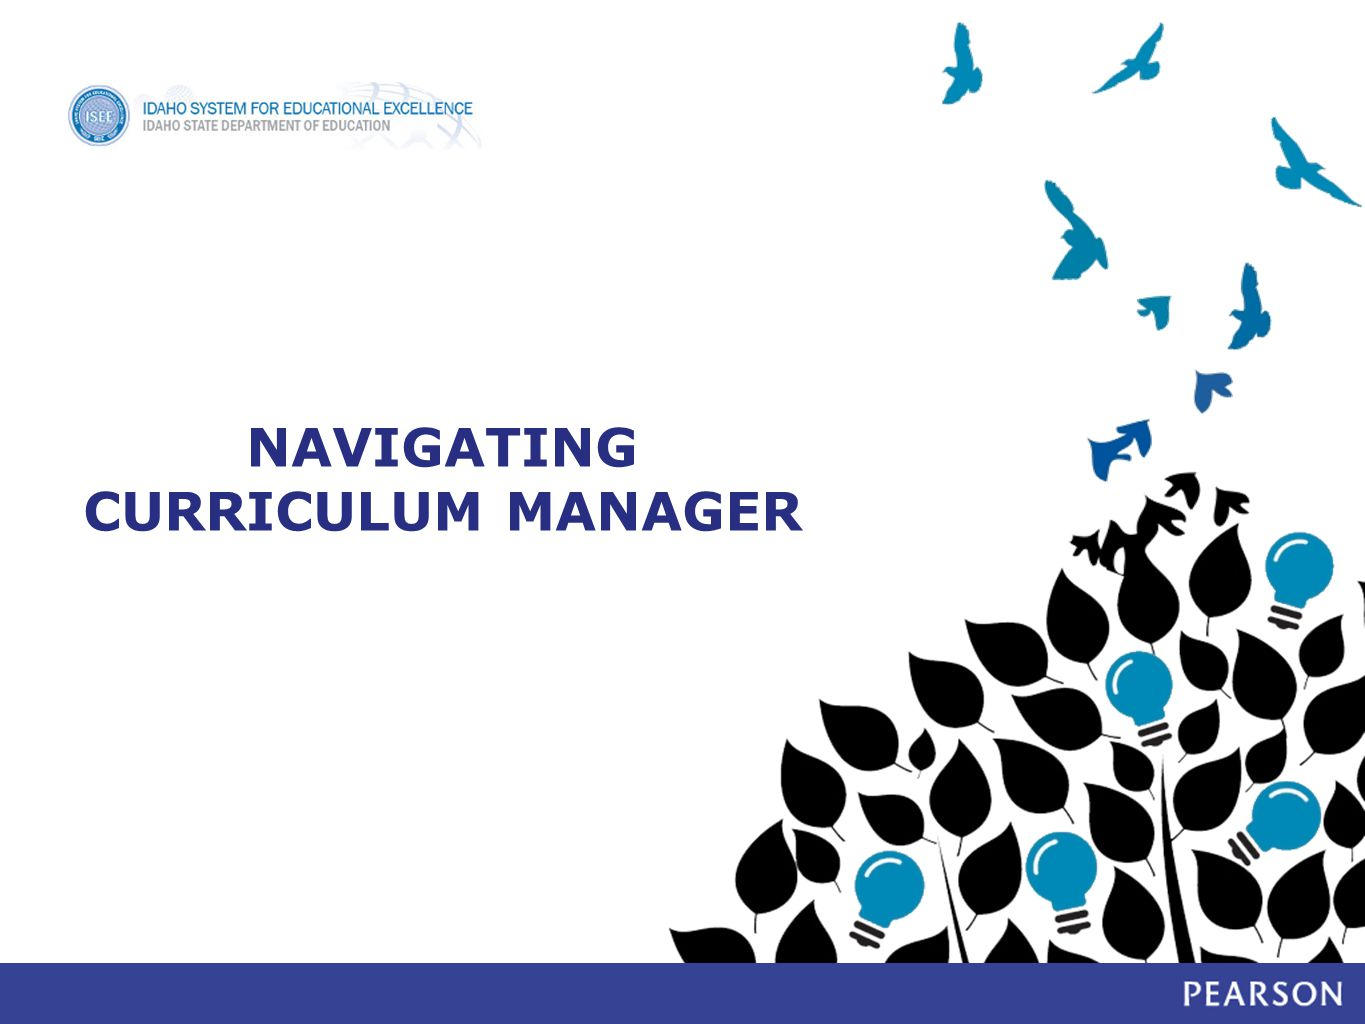 NAVIGATING CURRICULUM MANAGER